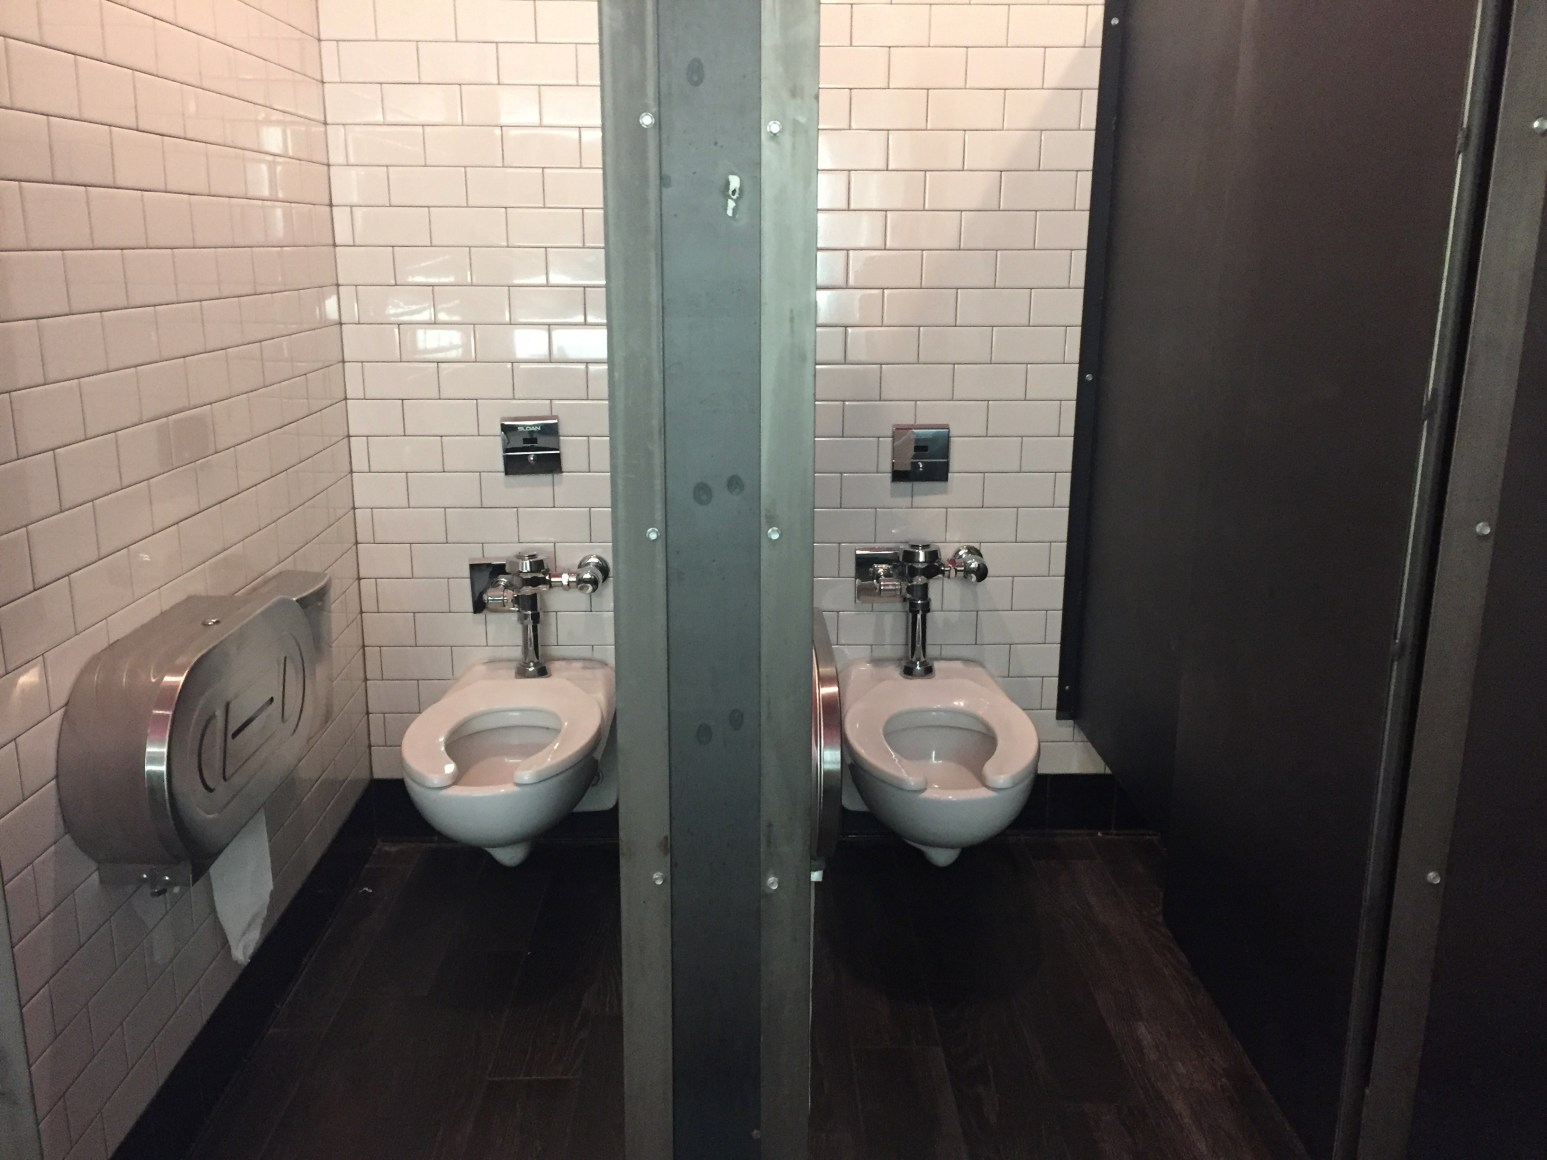 Power Ranking The Best And Worst Downtown Bar Bathrooms